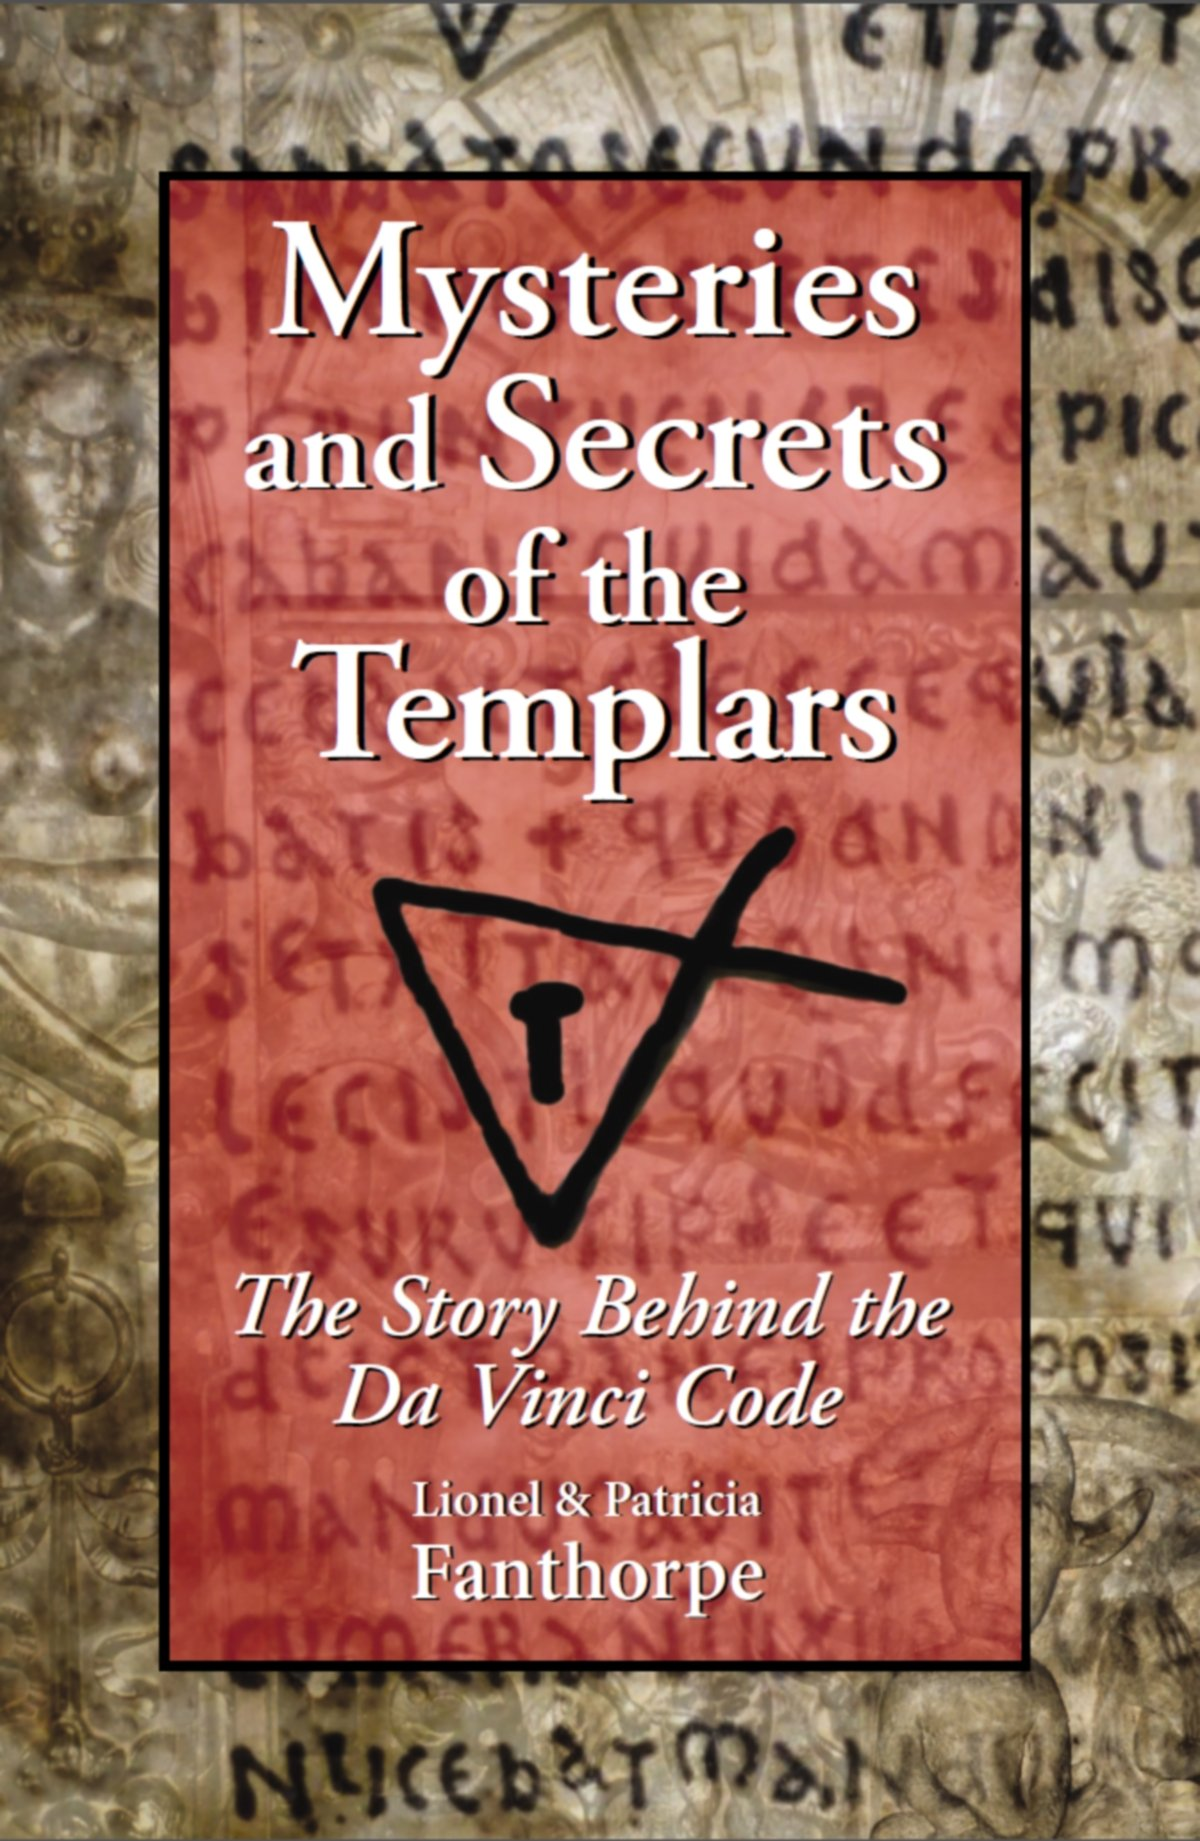 mysteries and secrets of the templars fanthorpe lionel and patricia